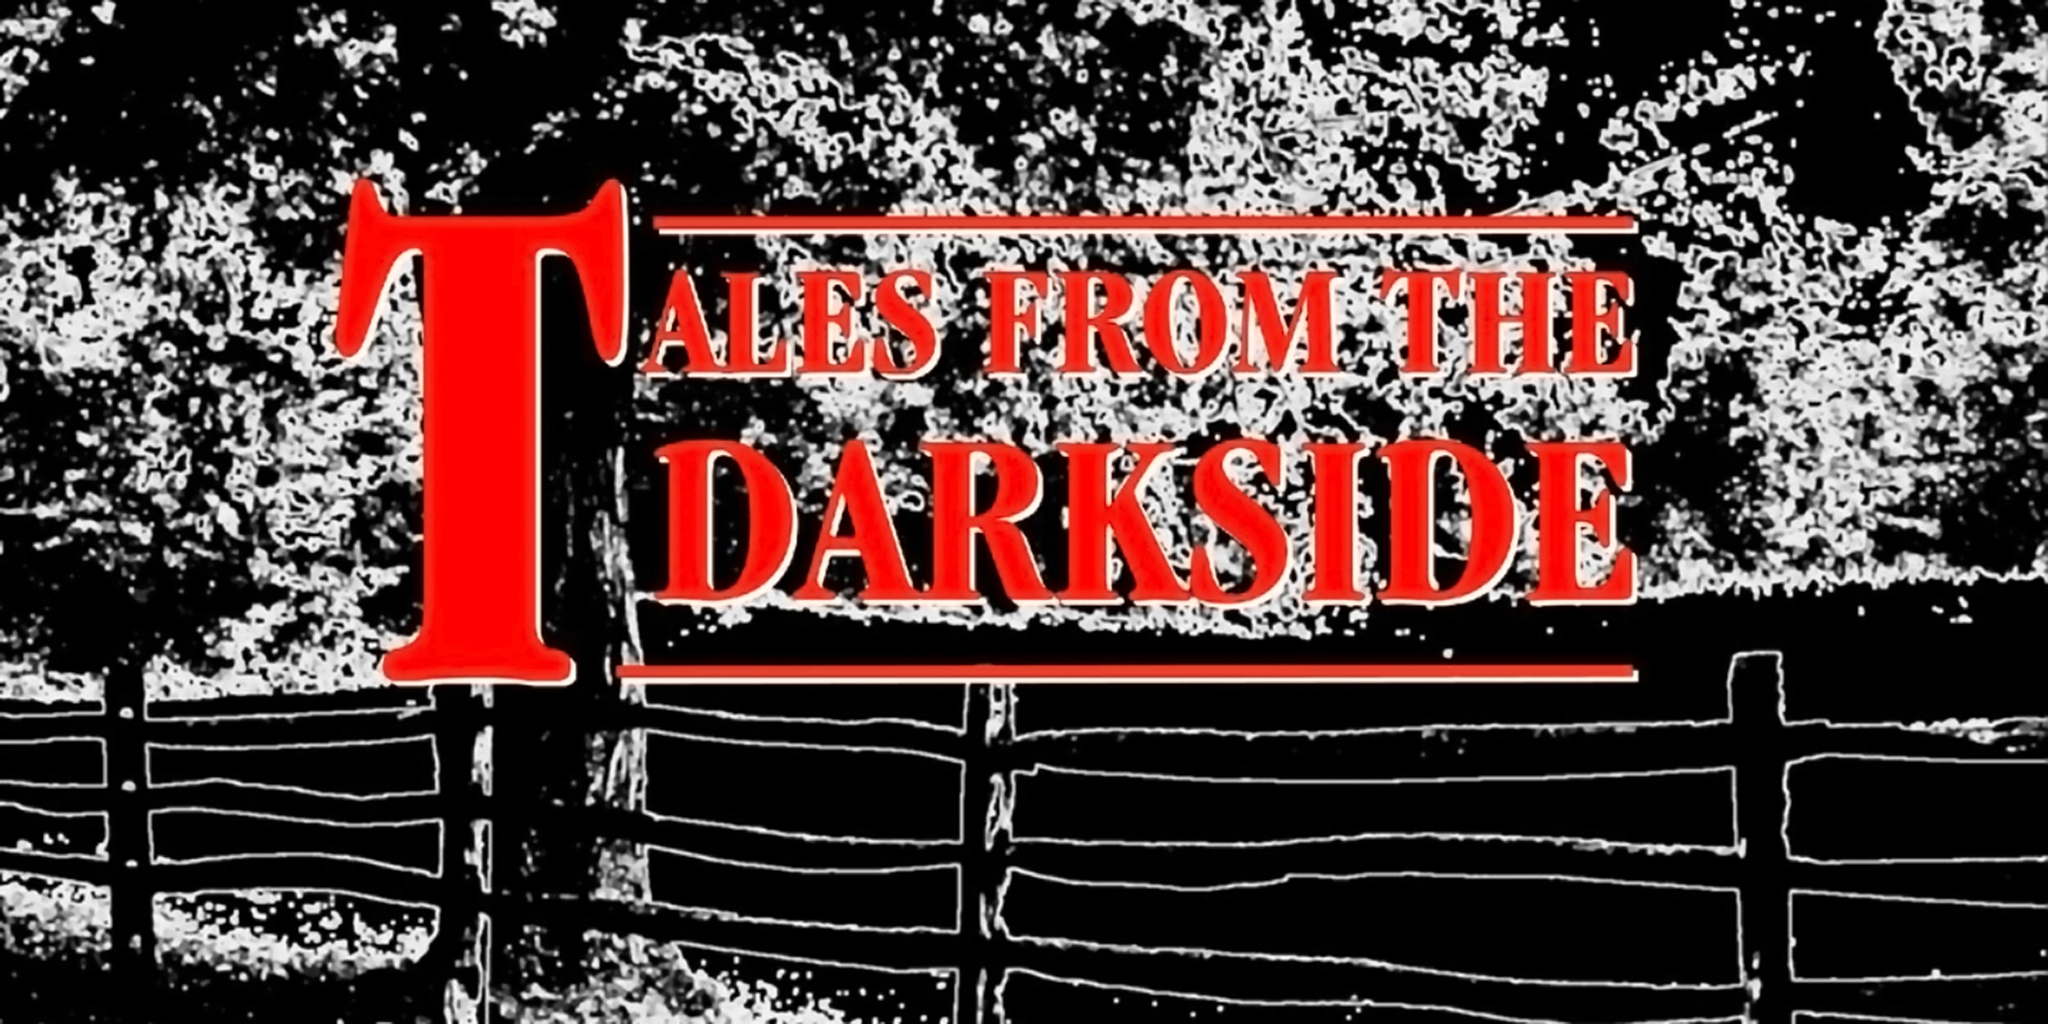 Tales From the Darkside title sequence